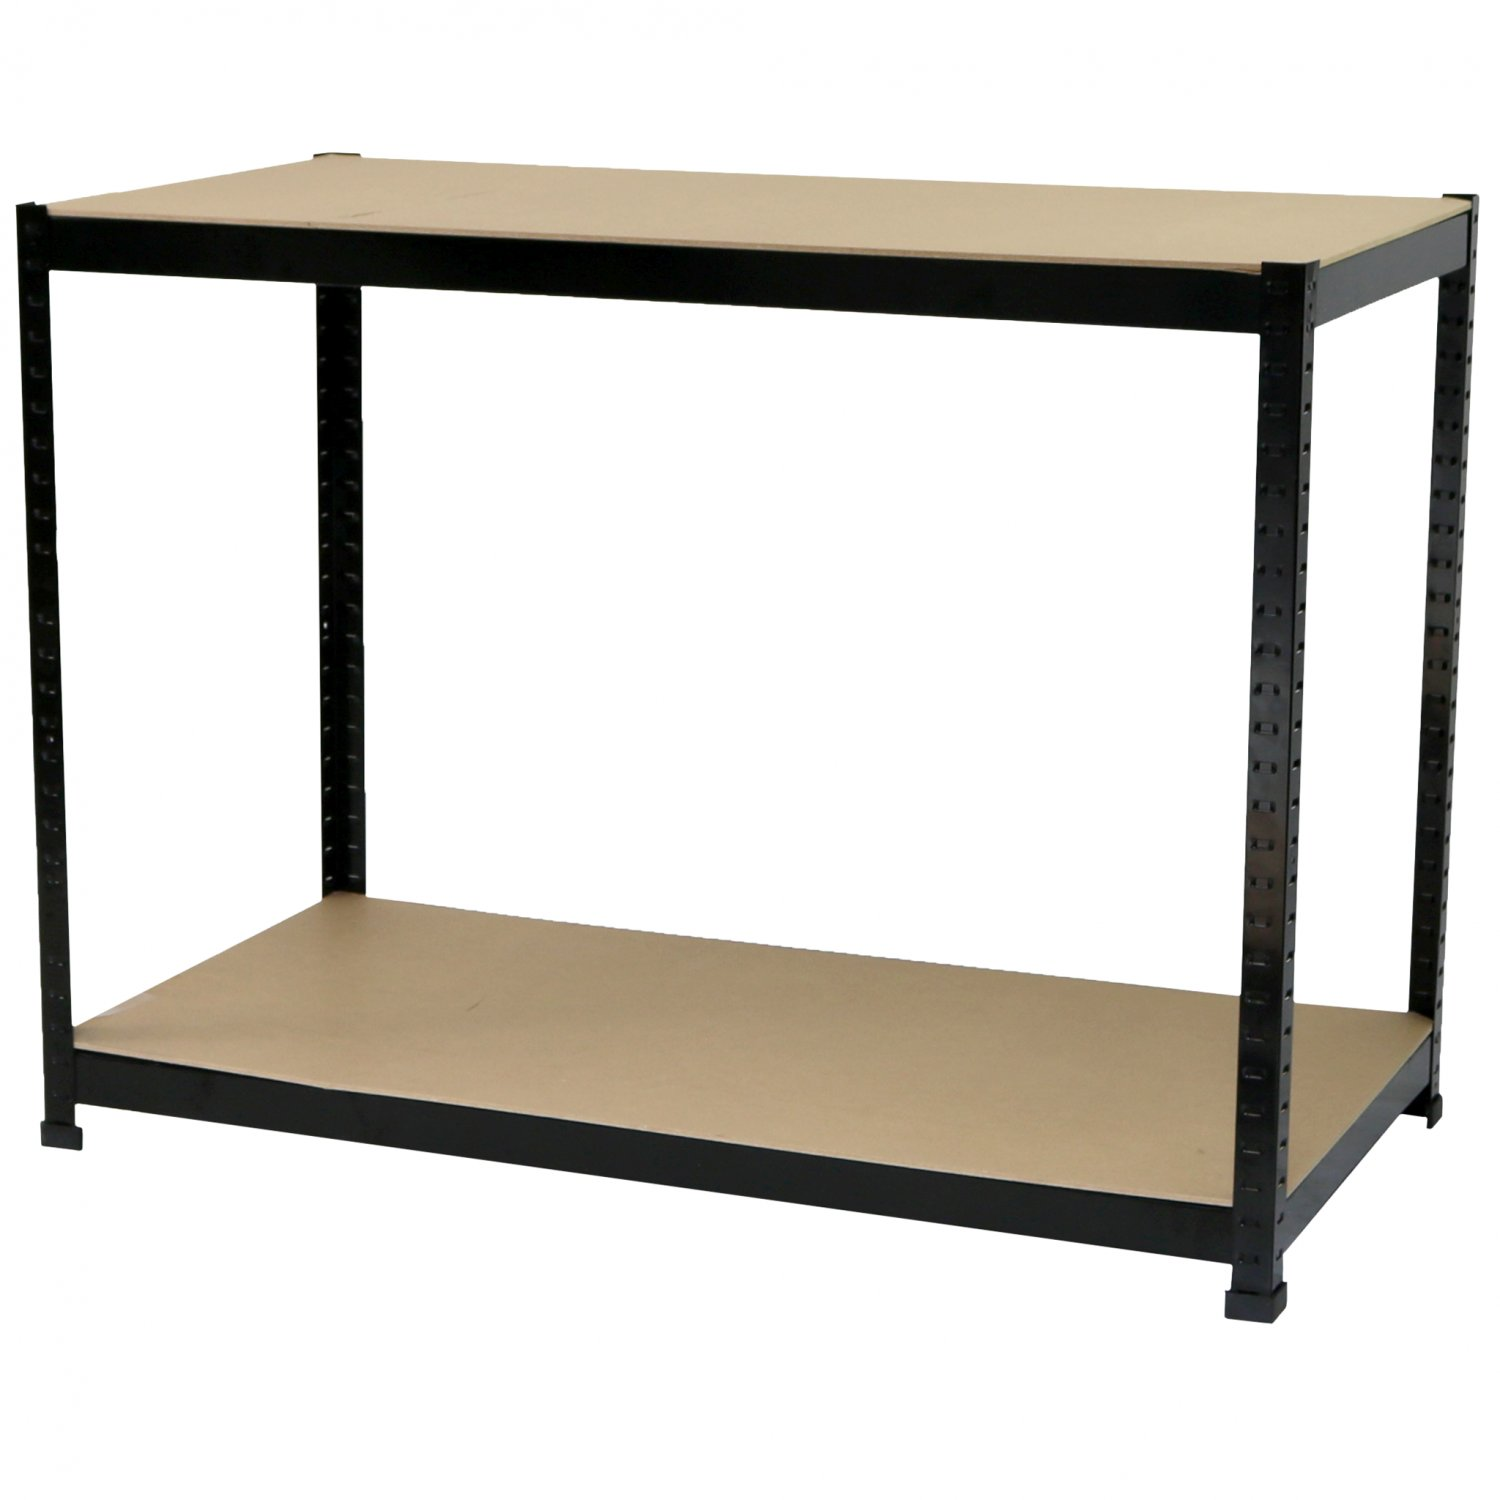 Industrial Heavy Duty Steel Workbench Table Shelving Garage Shed